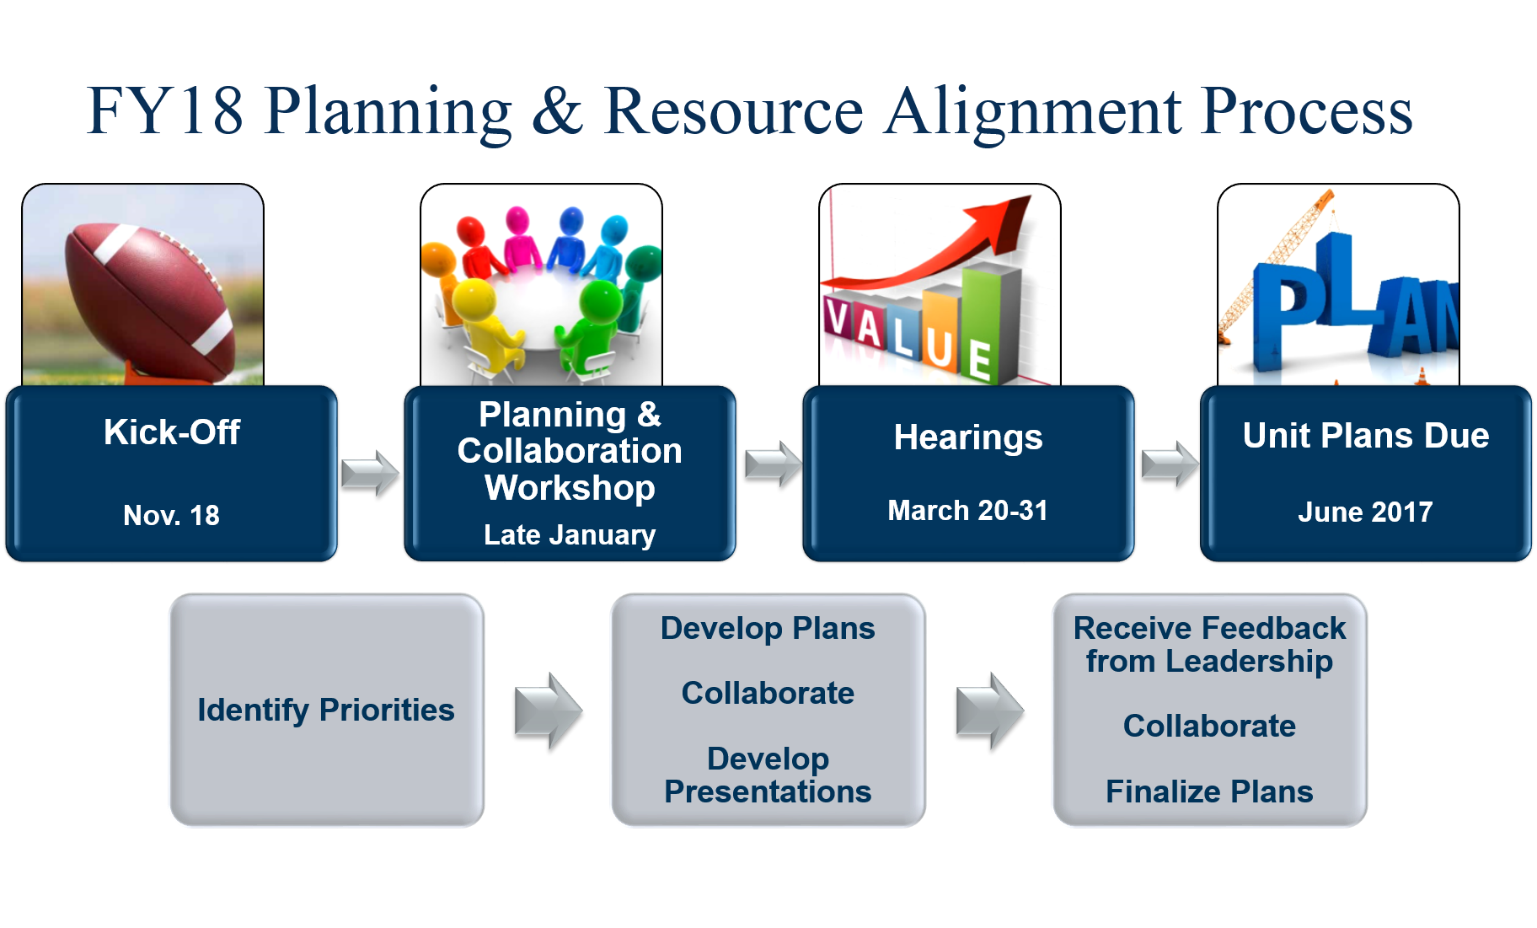 hr planning process presentation Human resource planning - authorstream presentation environmental analysis : environmental analysis the first step in the human resource planning process is to understand the context of human resource management.